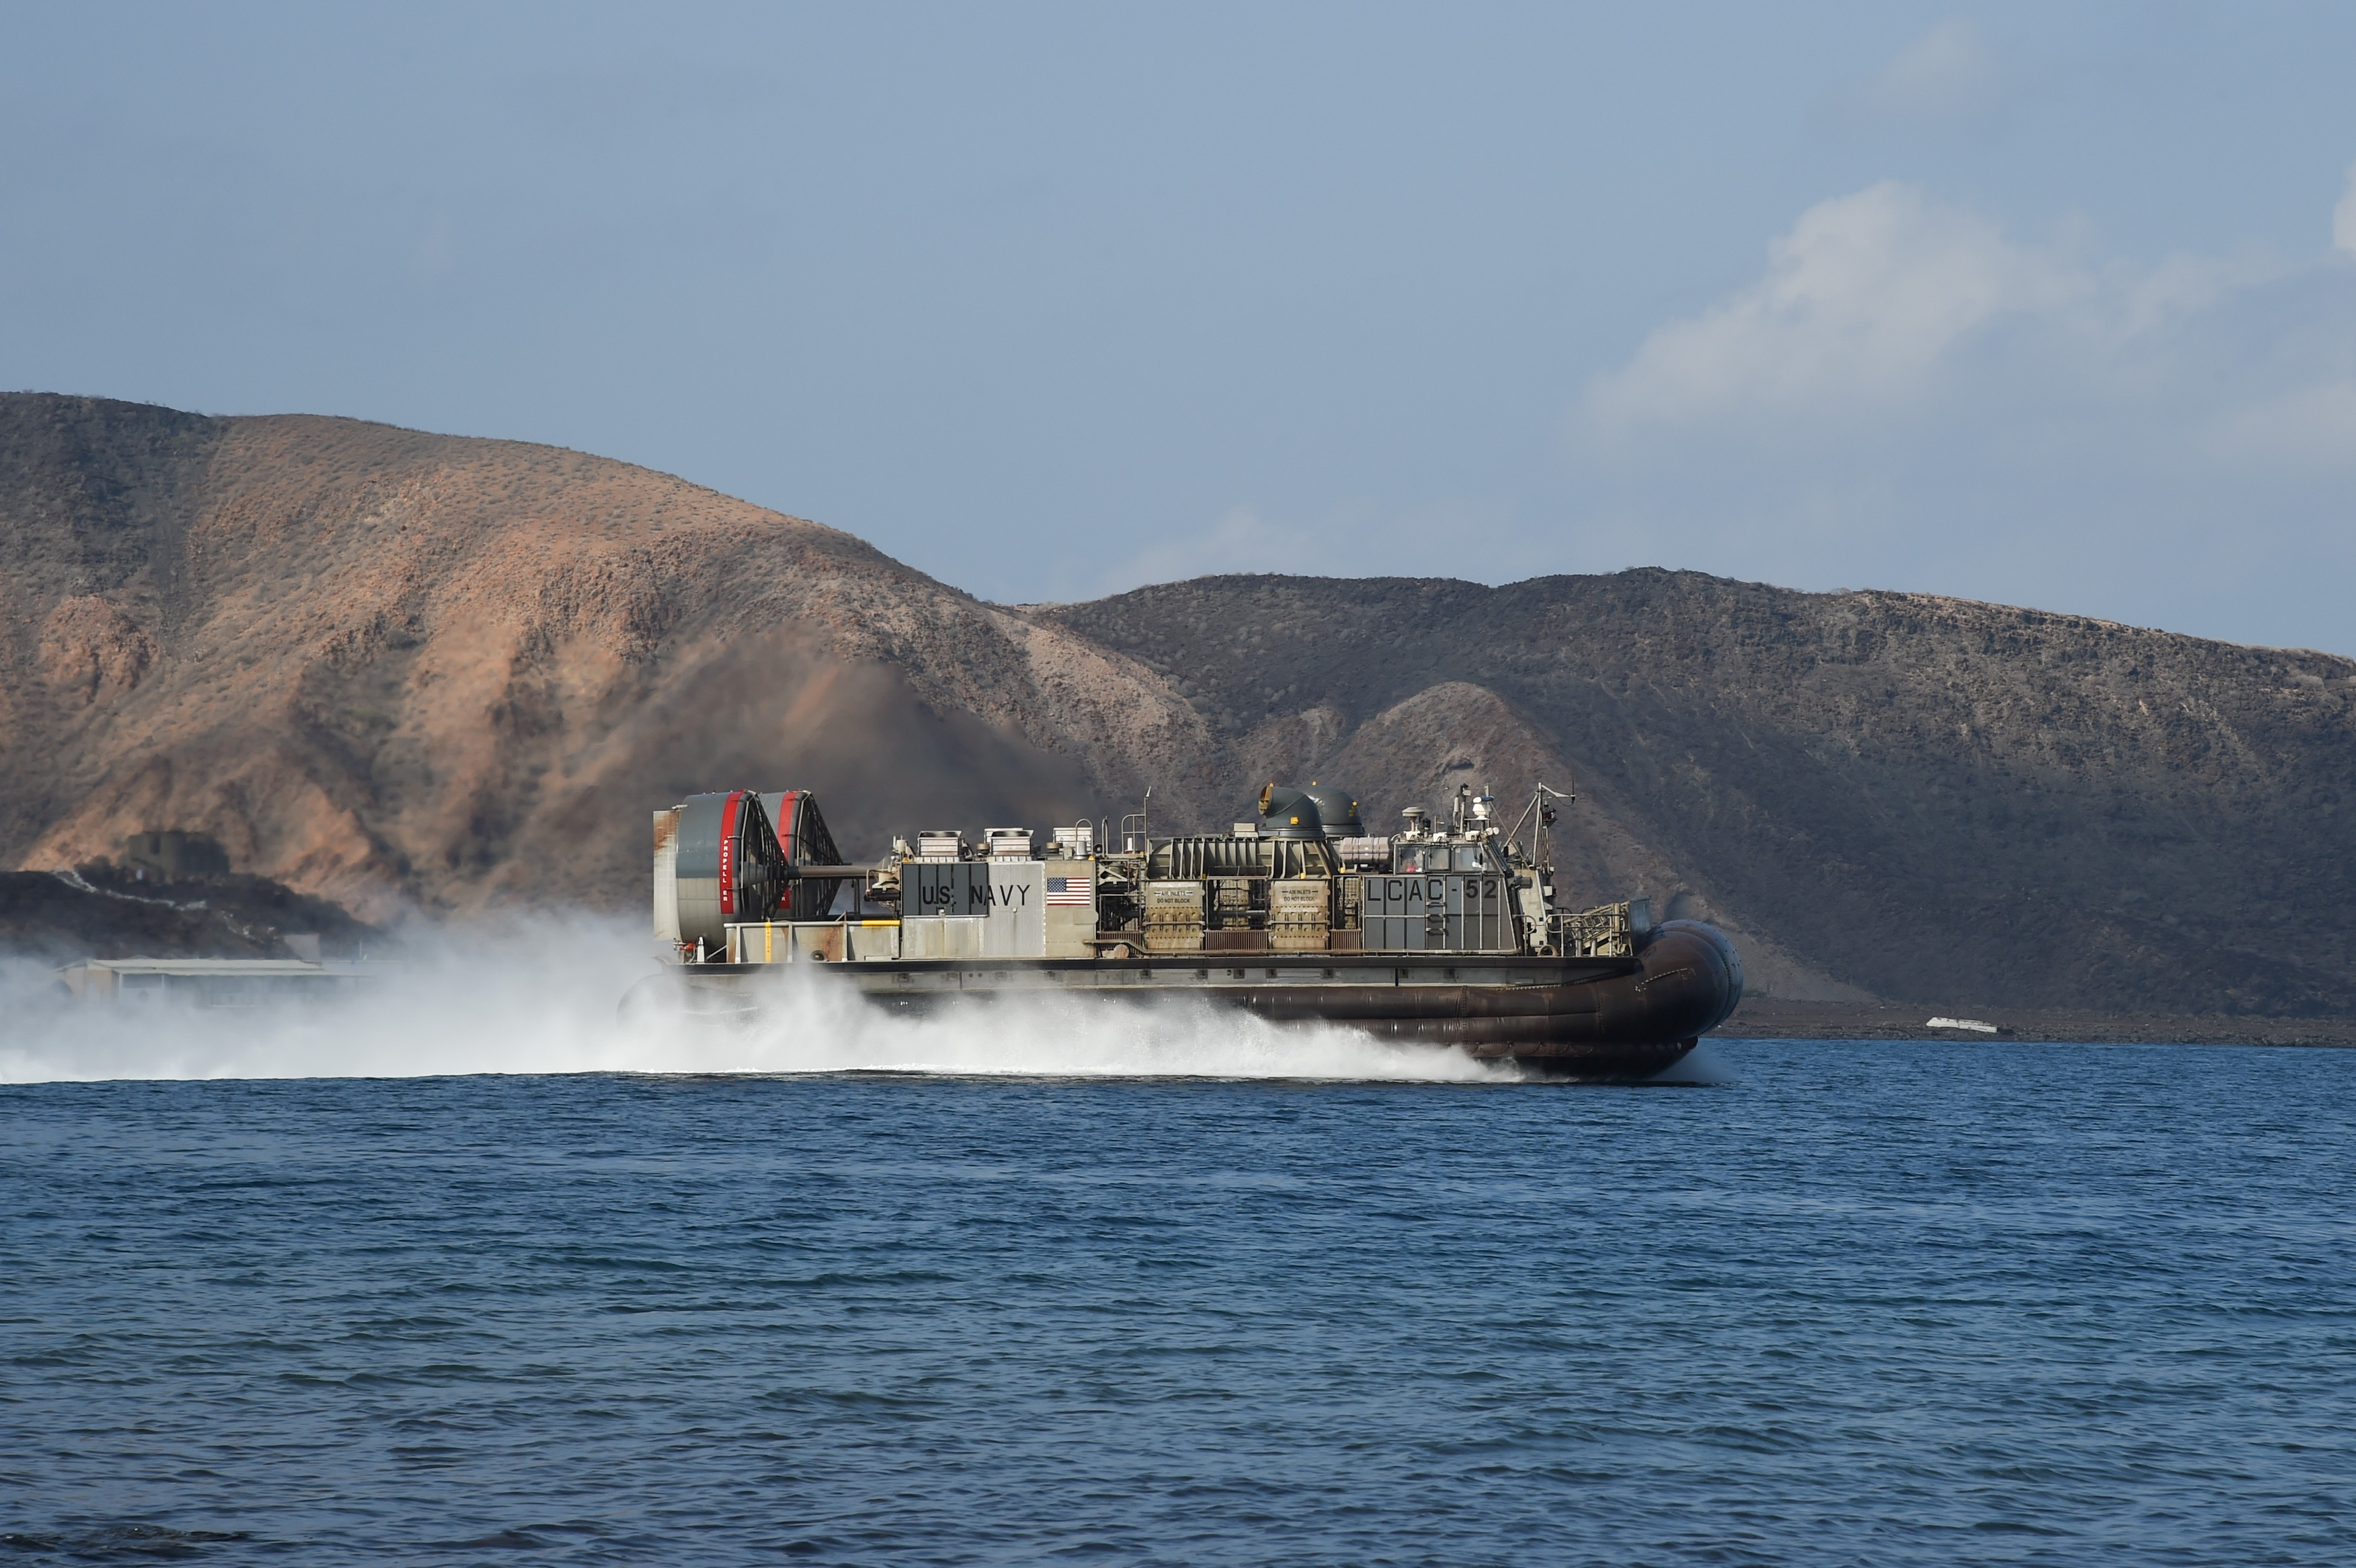 U.S. Marine Corps members with the 11th Marine Expeditionary Unit, USS Makin Island Amphibious Ready Group, are transported to shore via Landing Craft Air Cushion (LCAC), Dec. 7, 2016, at Arta Plage, Djibouti. A MEU is a quick response force, which consists of Sailors and Marines on standby for immediate crisis response across the globe. (U.S. Air National Guard photo by Staff Sgt. Penny Snoozy)